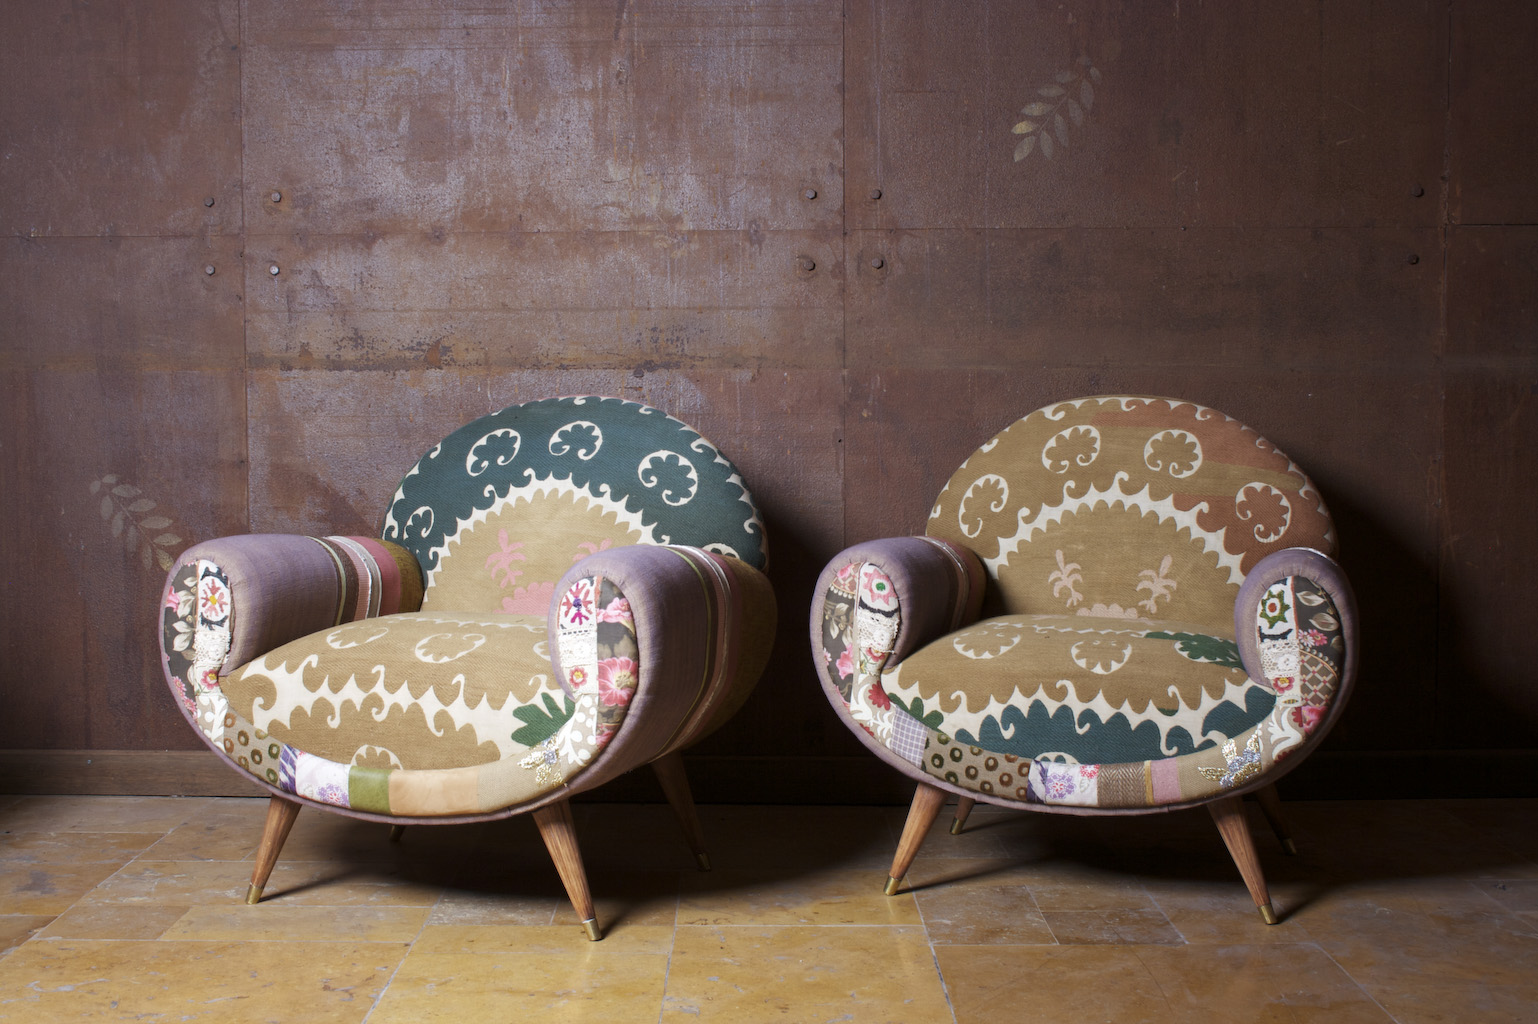 hoda always had a passion for ancient tapestries and textiles and maria for antique furniture the two joined forces in 2000 bohemian furniture